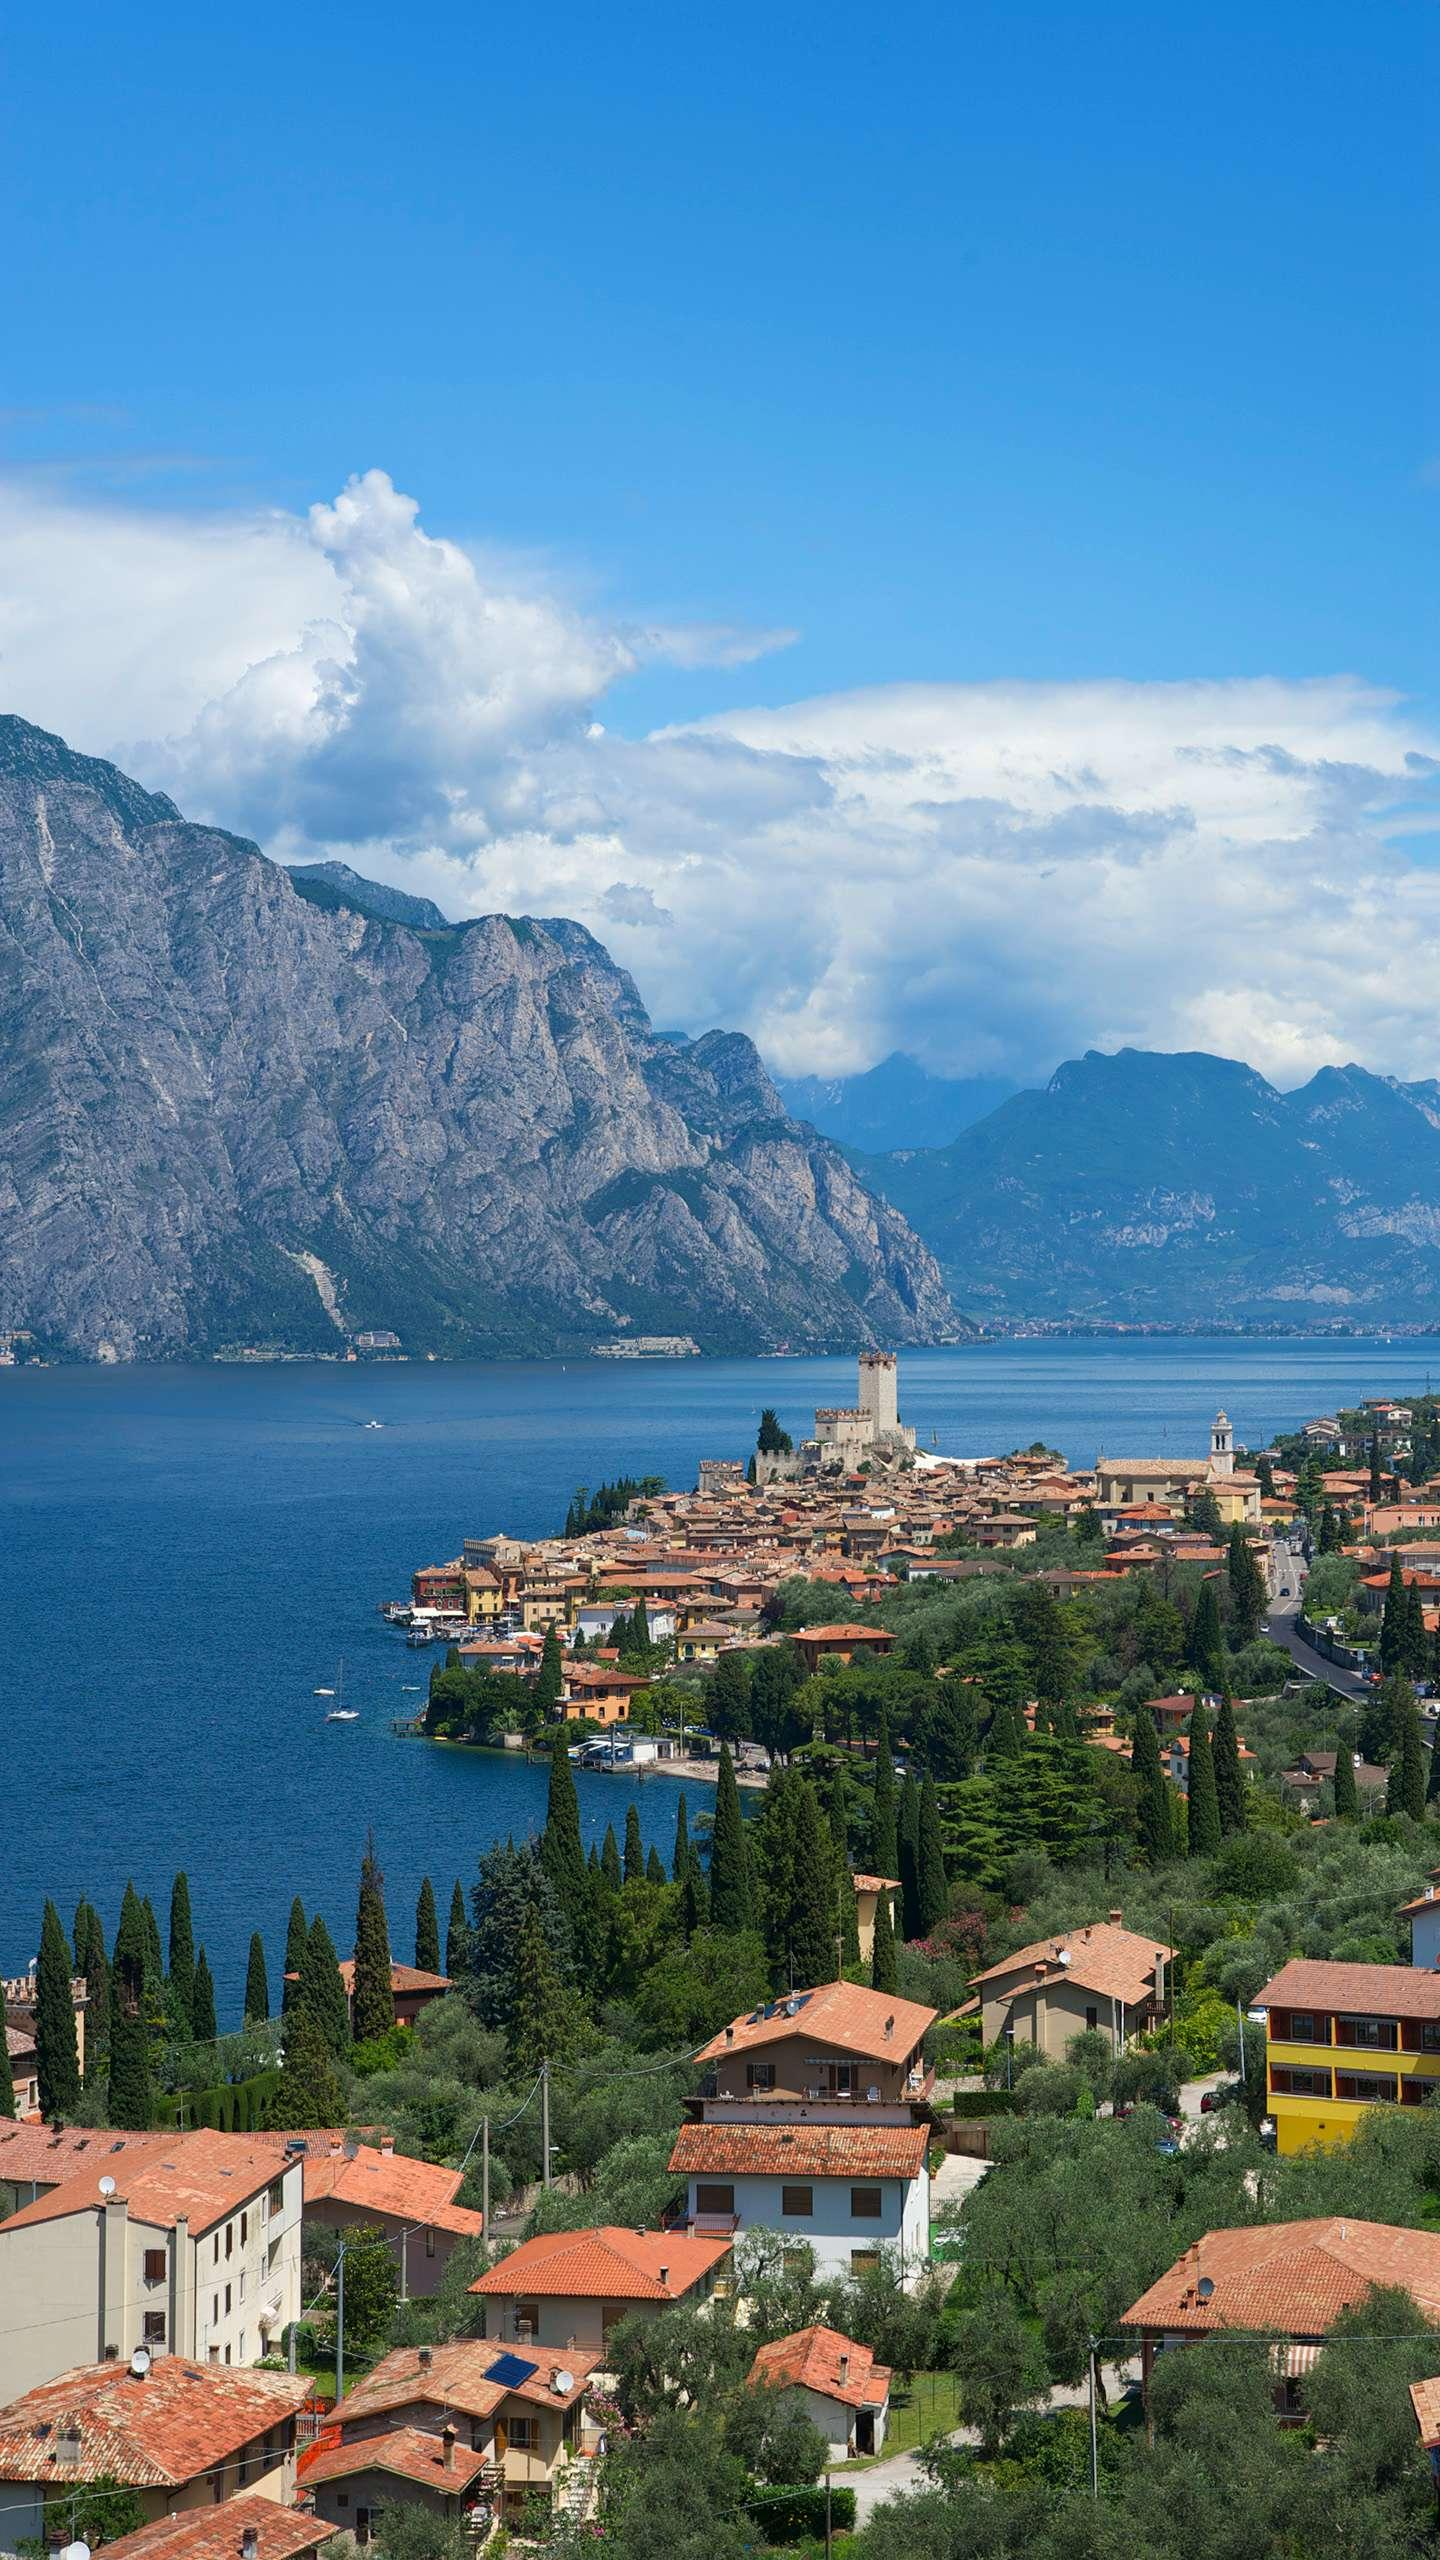 Italy - Lake Garda. Italy's largest inland lake, with its ancient castles and charming lakeside towns along the coast, is very attractive.